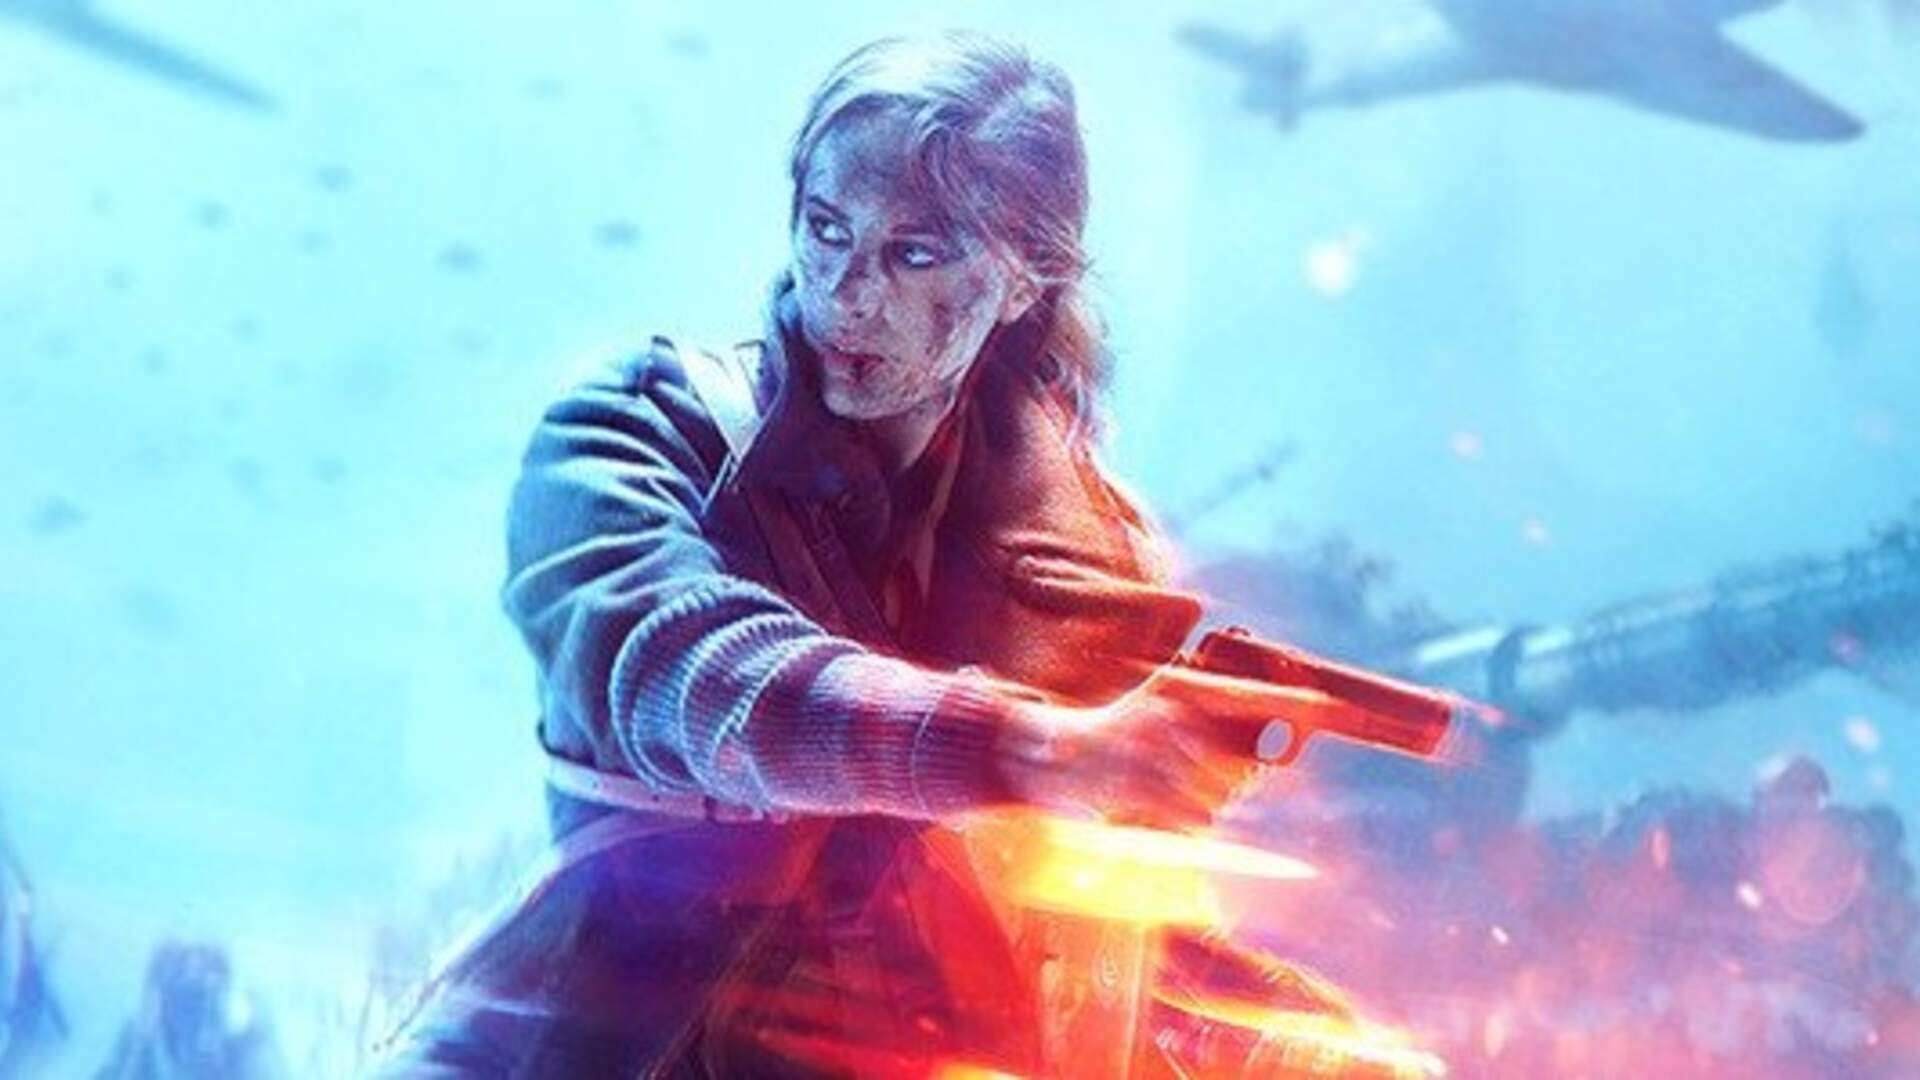 Battlefield 5: Five Takeaways After Two Days With the Review Version